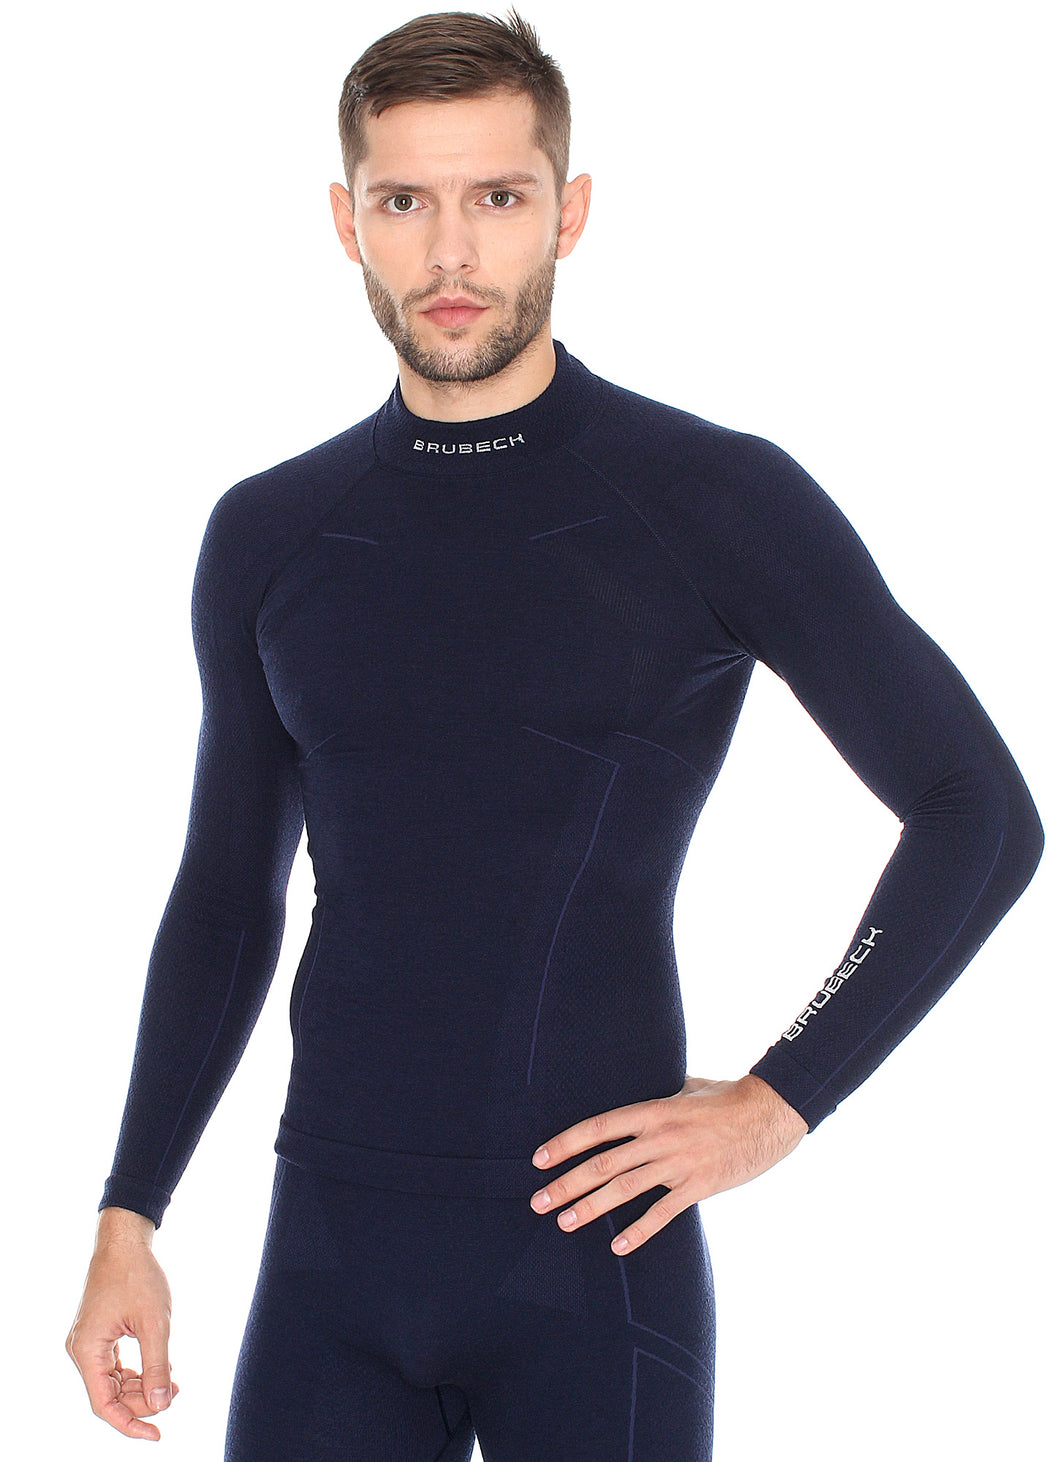 Men's Top EXTREME WOOL Long Sleeve Navy Blue